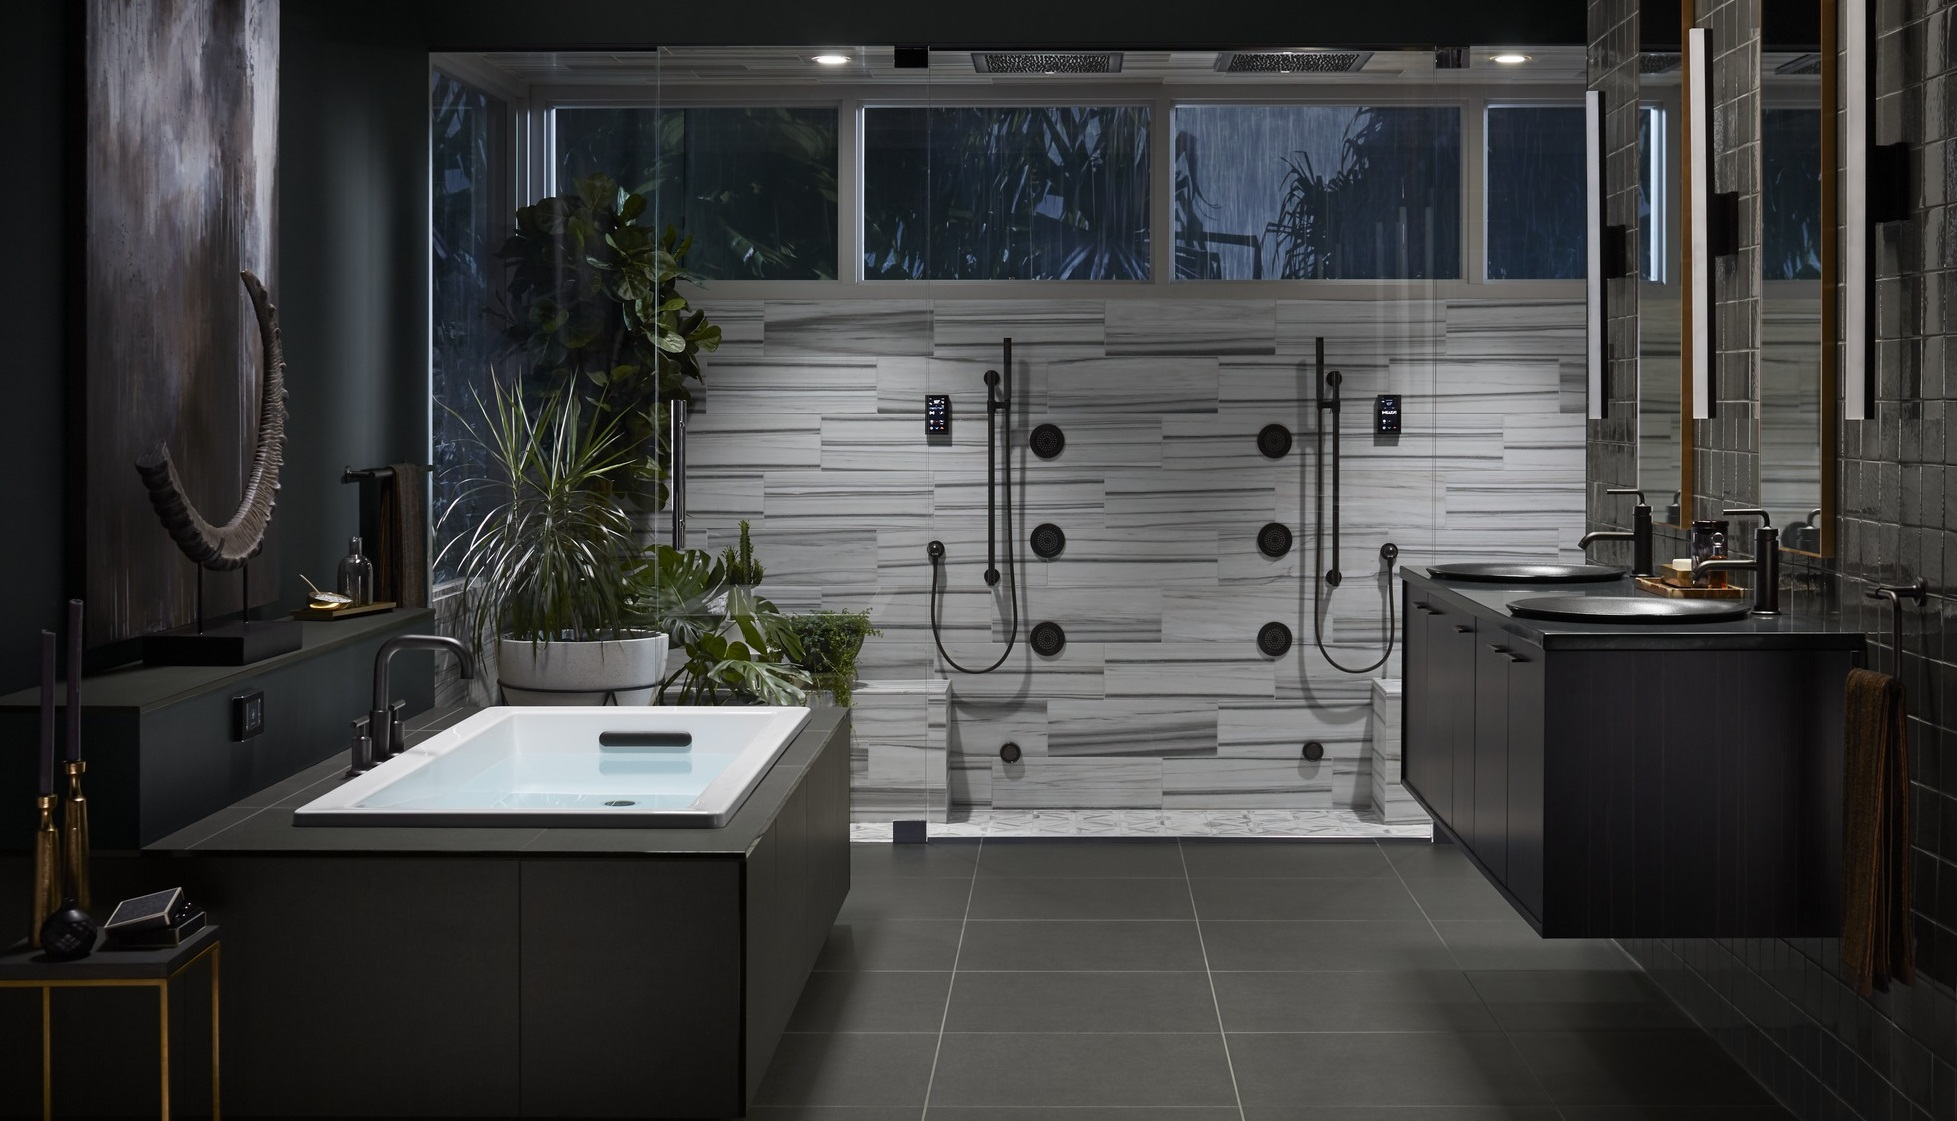 Bathroom Nj Bathroom Design Remodeling General Plumbing Supply